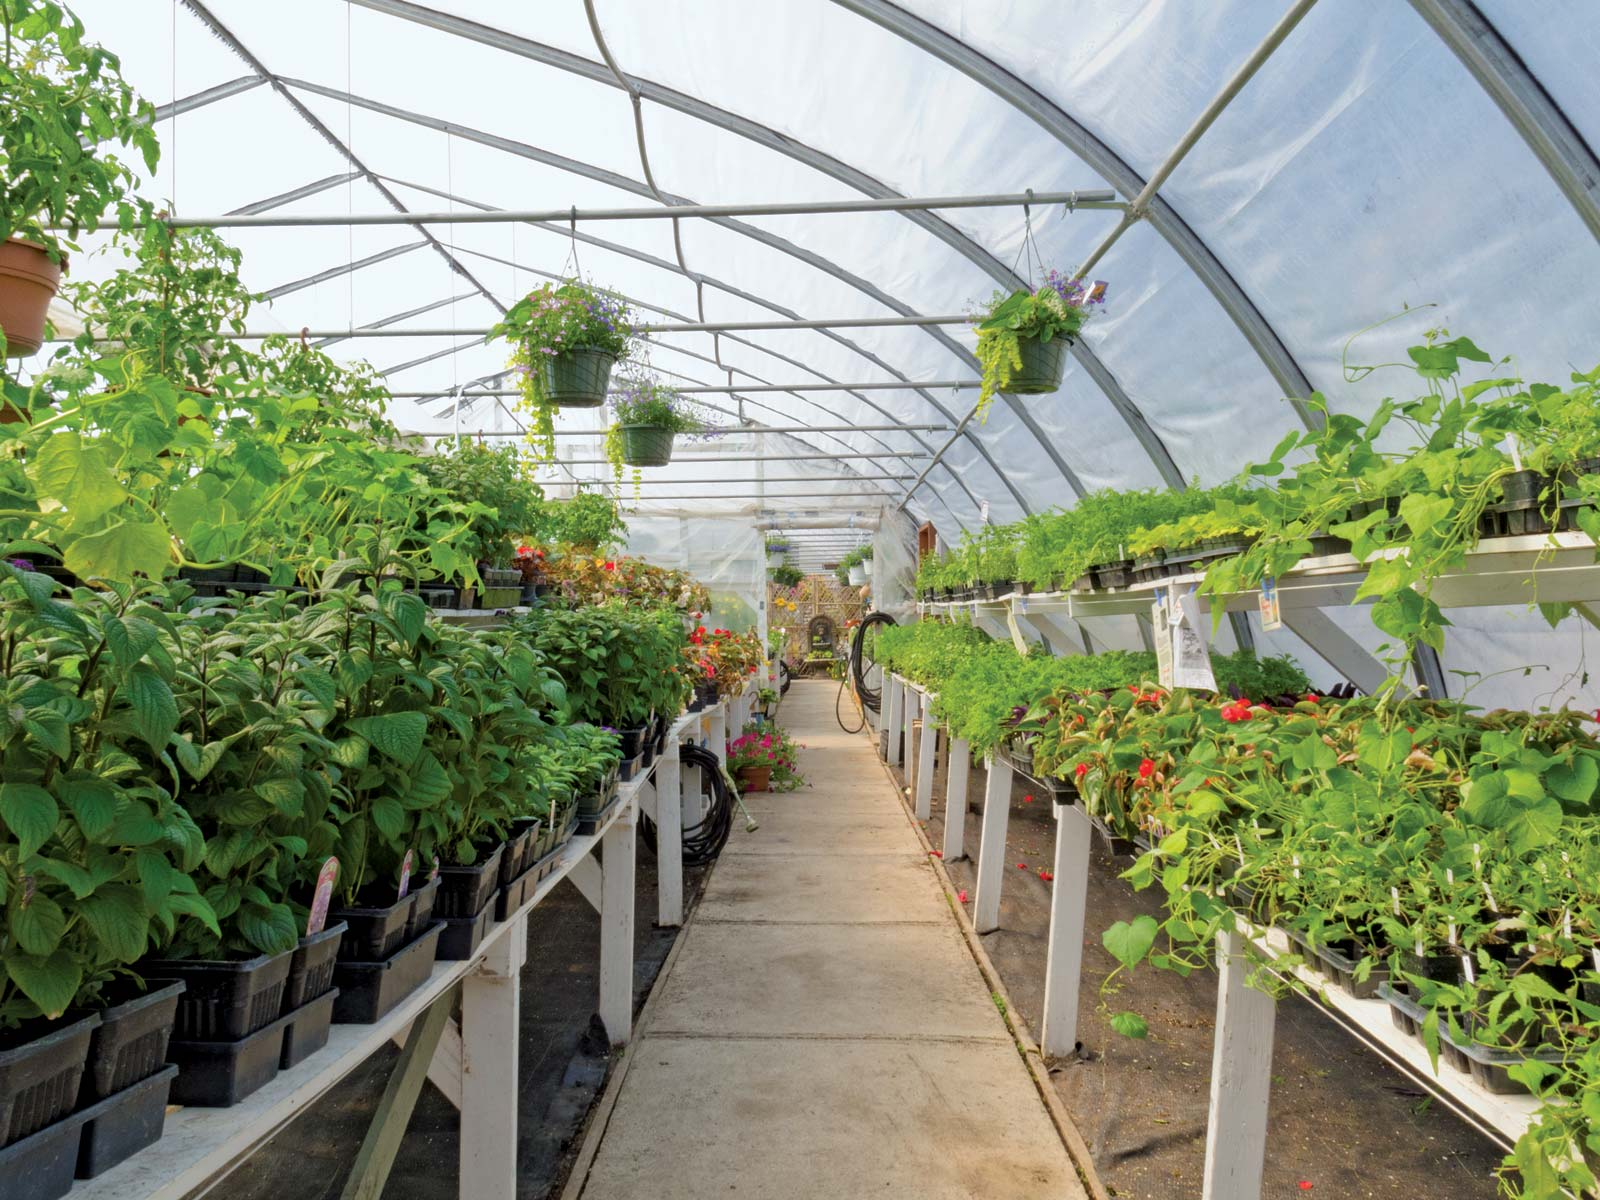 Govt to revive 16 closed horticulture plantations